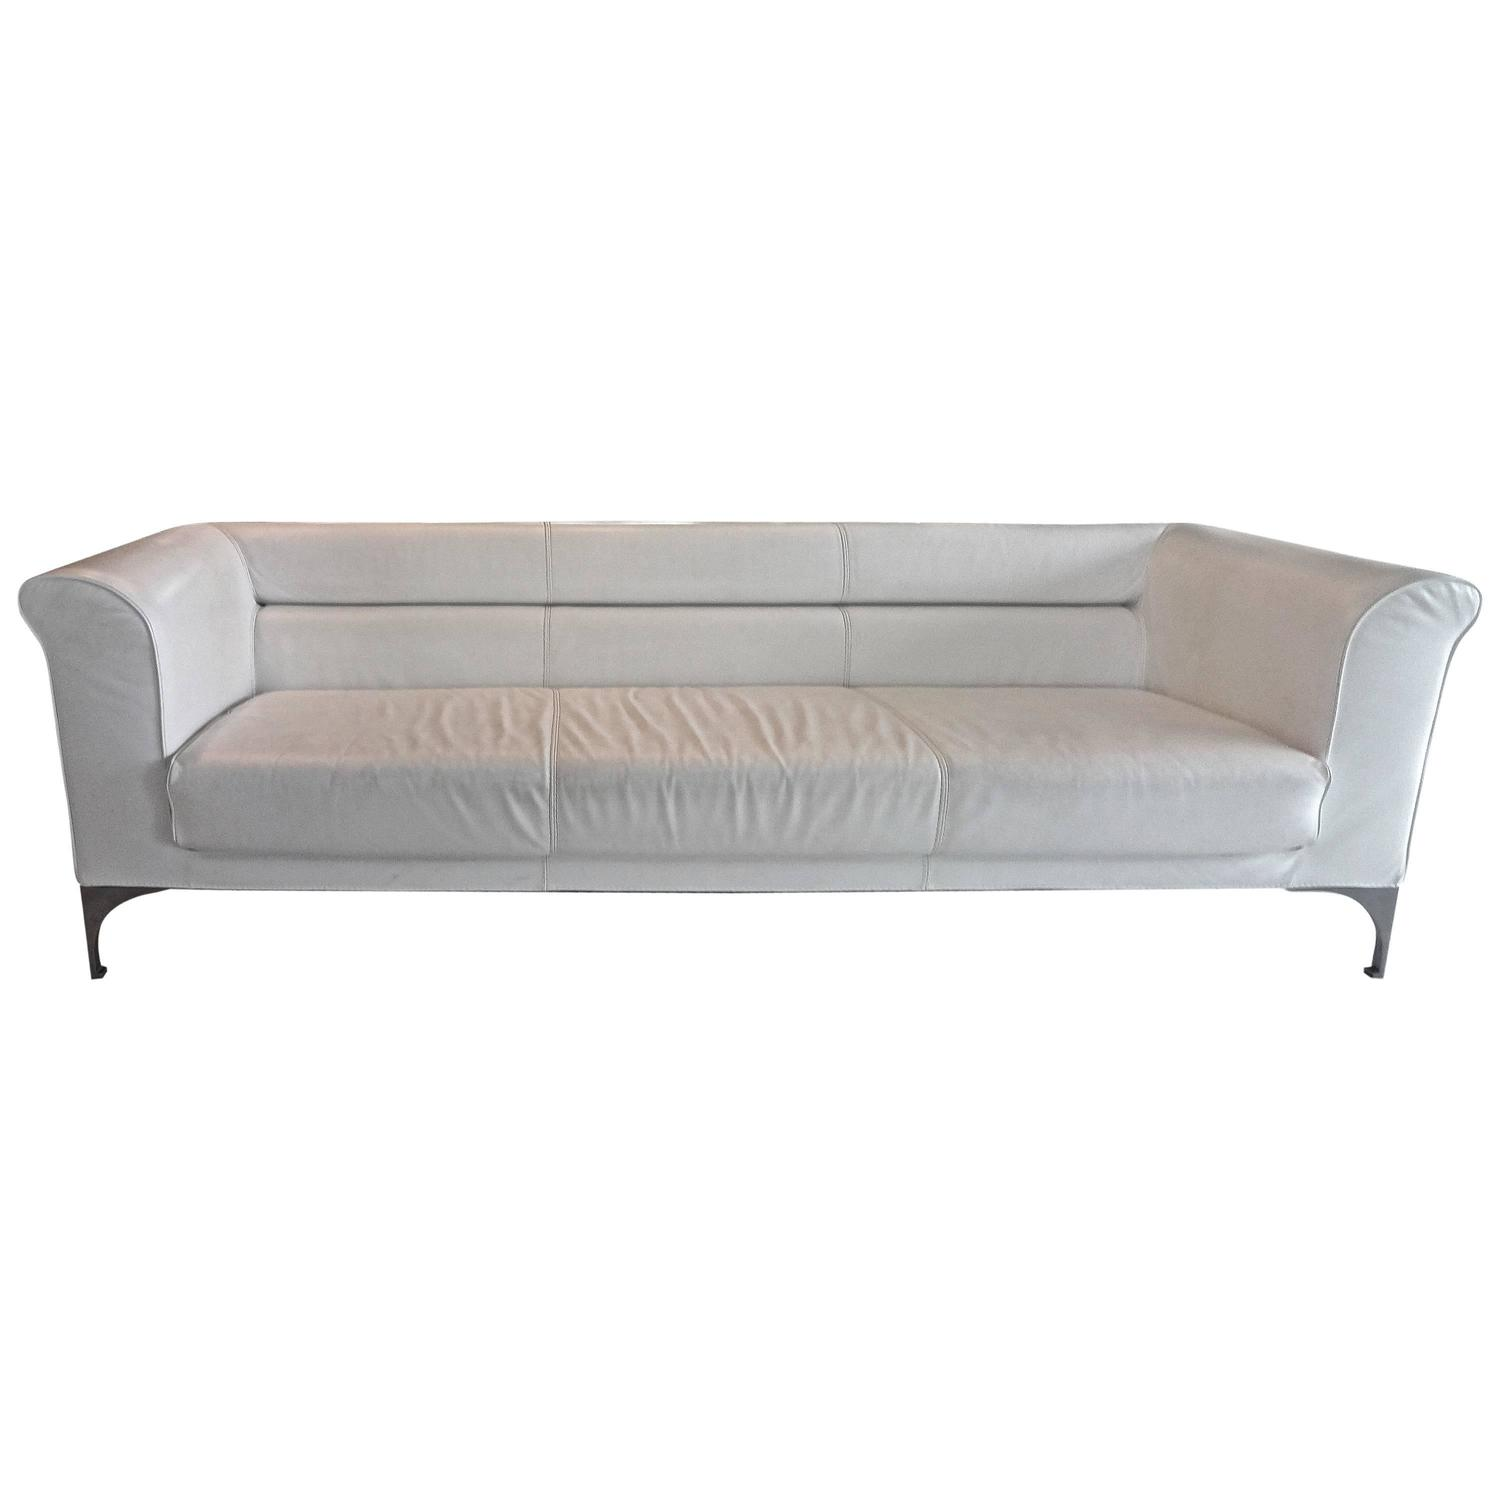 Roche bobois white leather sofa for sale at 1stdibs for Leather sofas for sale